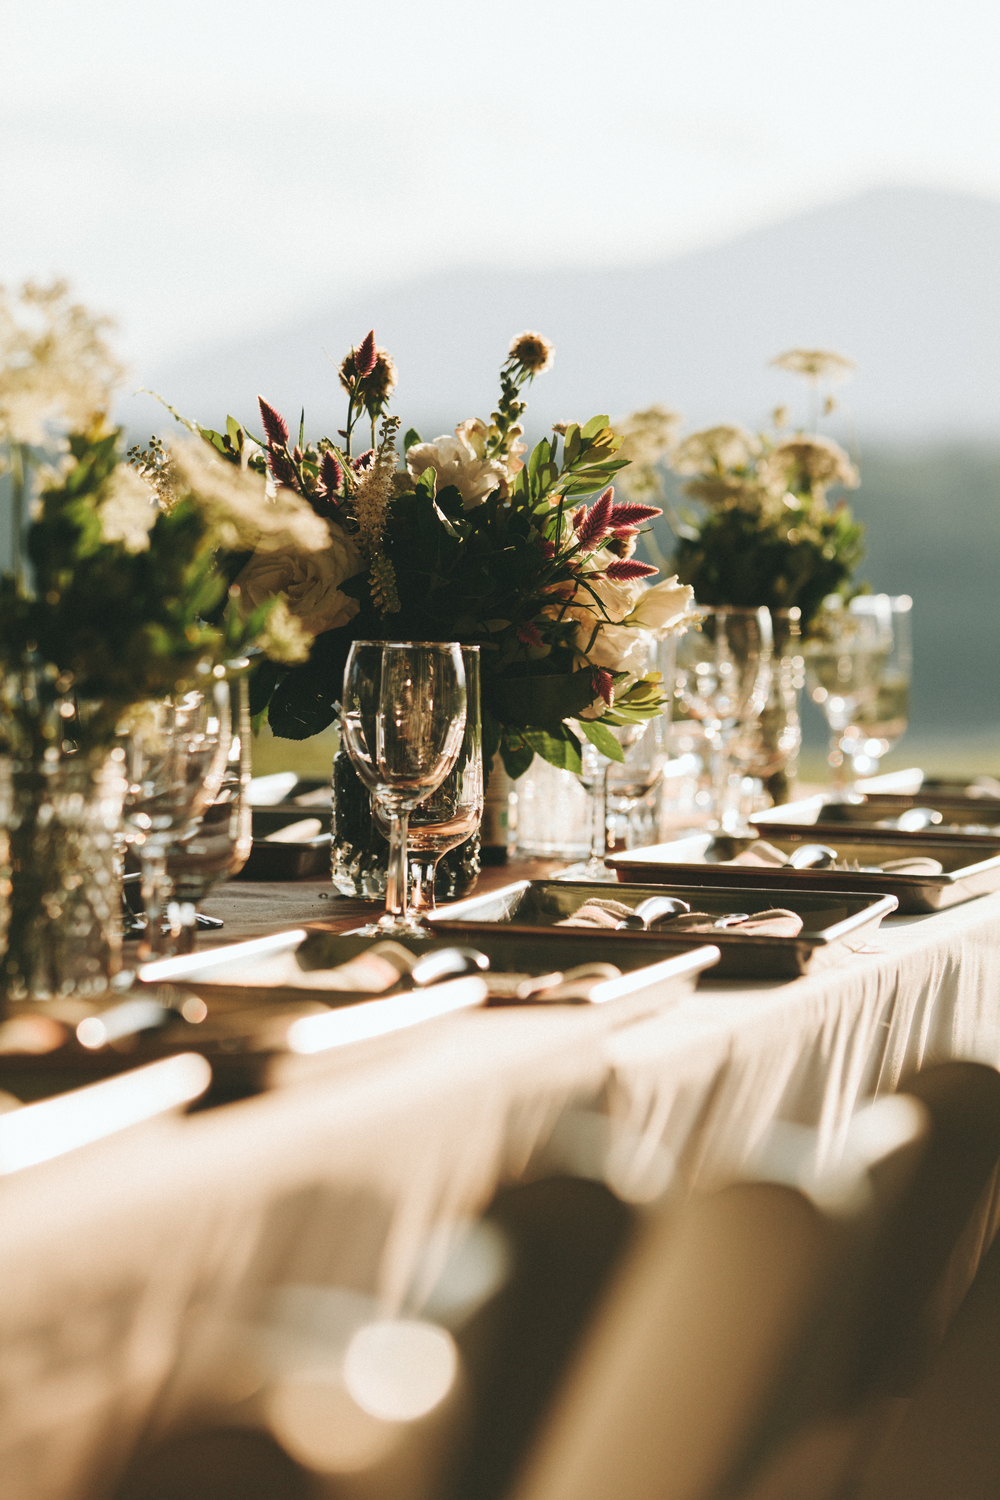 We throw elegant events that live at the intersection of utterly delicious and super fun.